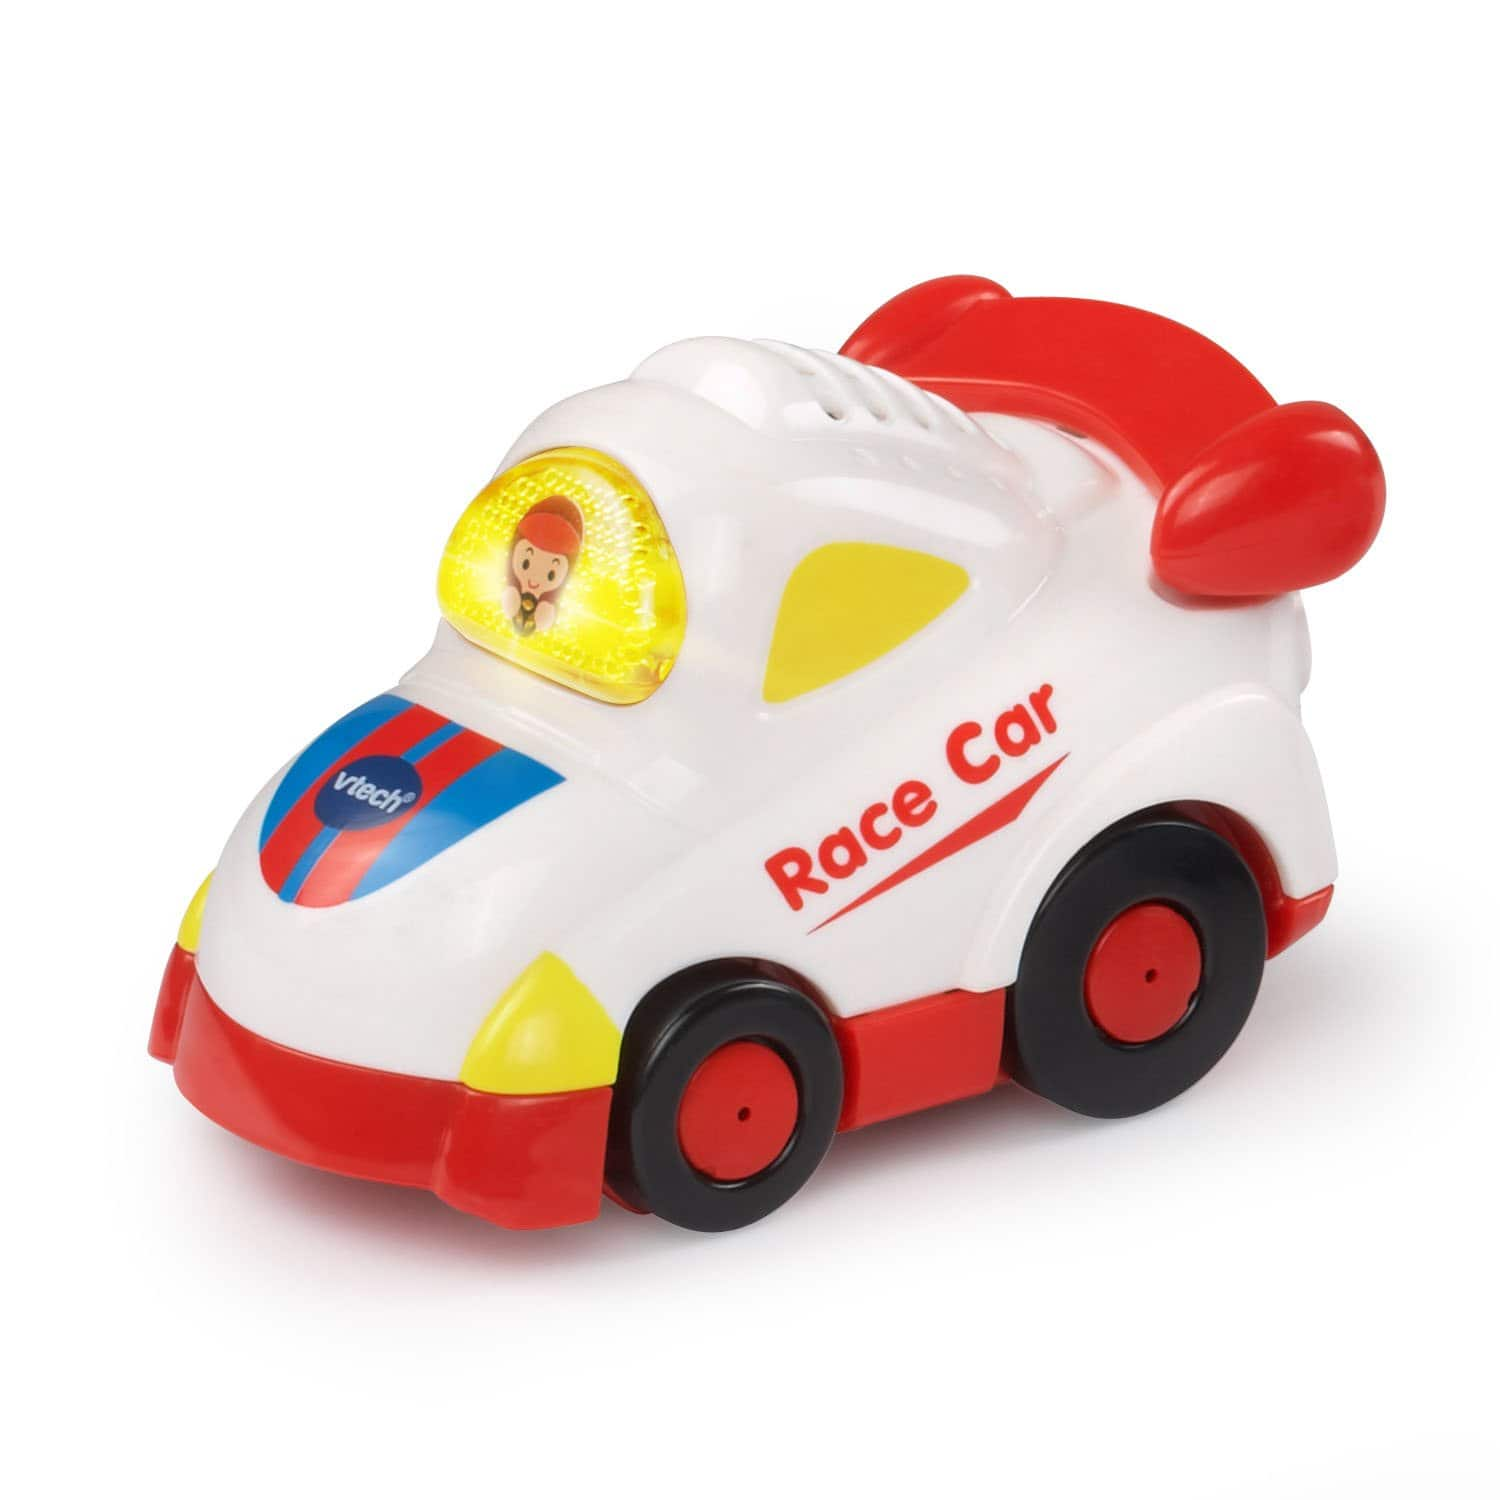 VTech Go! Go! Smart Wheels Sports Cars 3-Pack - Amazon free shipping with PRIME - $12.49